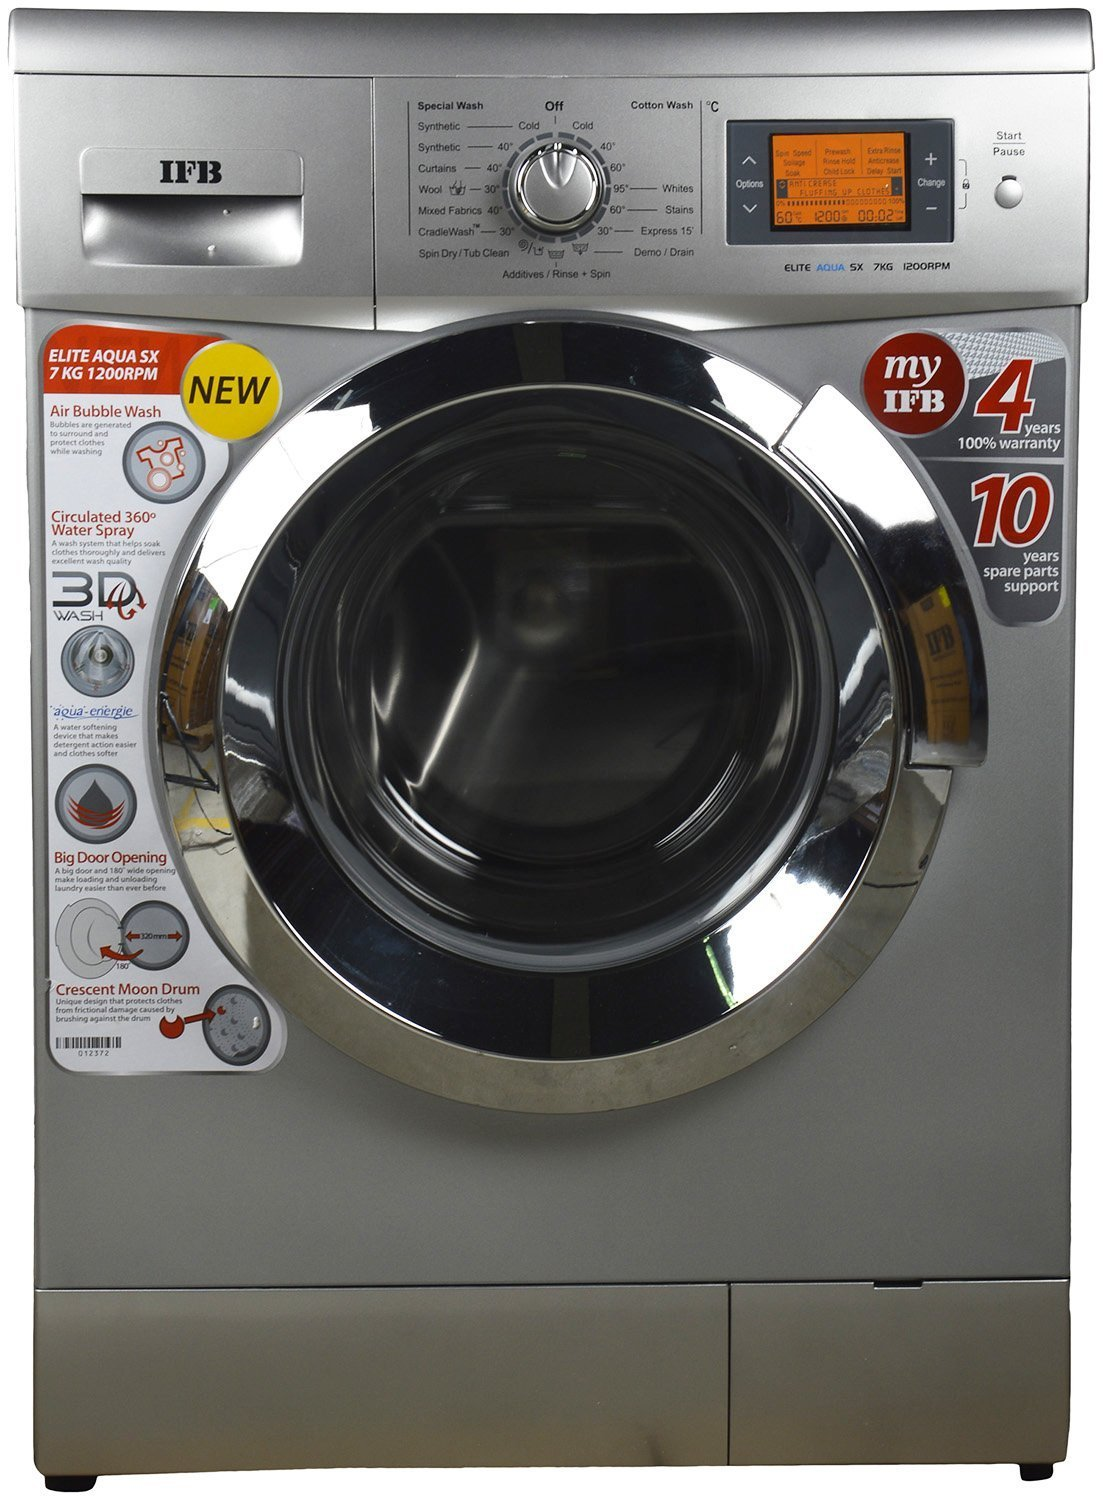 IFB Elite Aqua SX Fully Automatic Front-loading Washing Machine